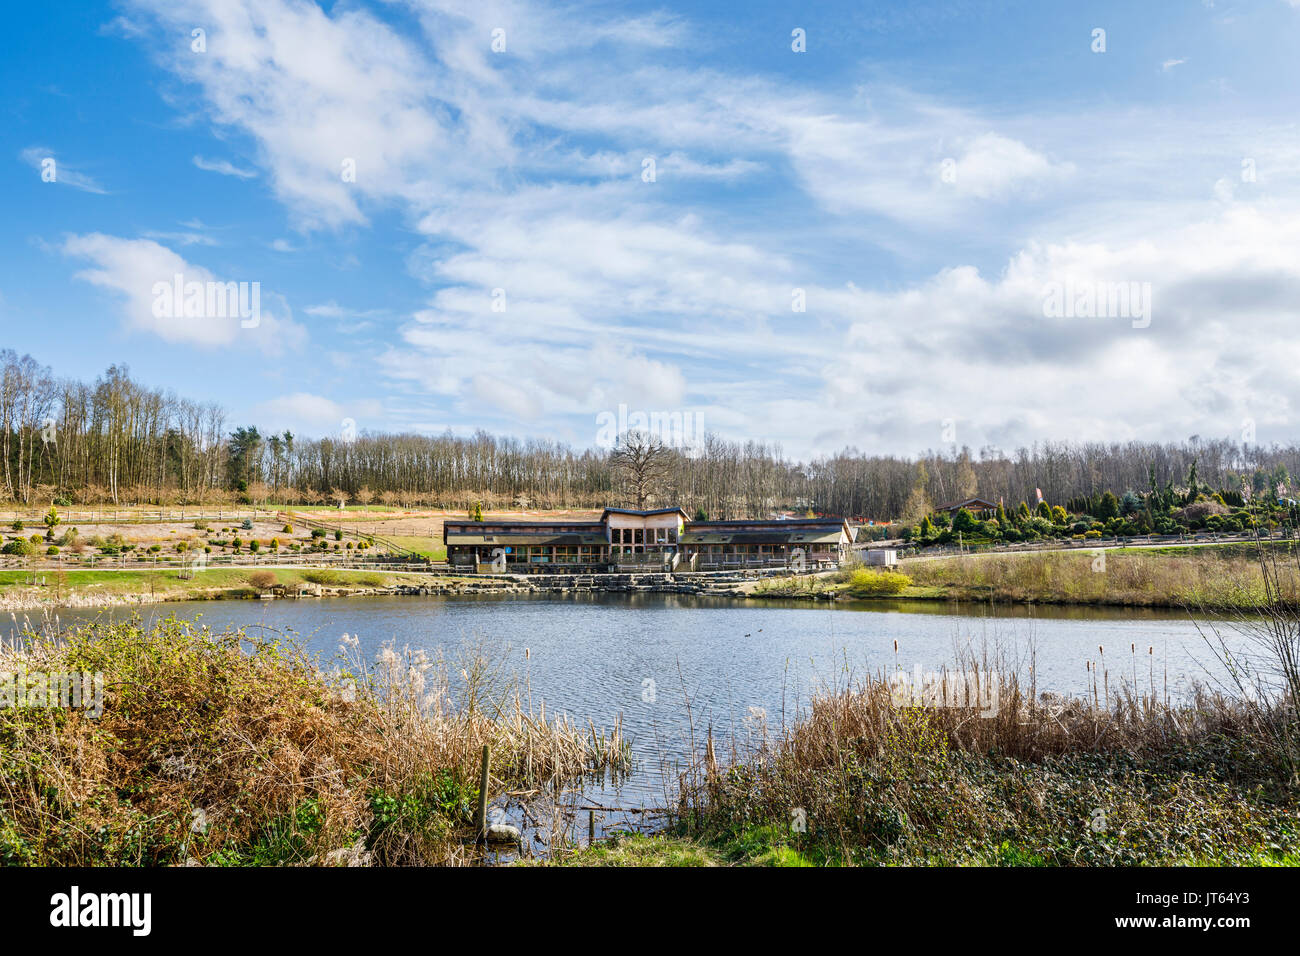 Bedgebury National Pinetum lake, cafe and visitor centre, Bedgebury, Kent, south-east England in spring - Stock Image